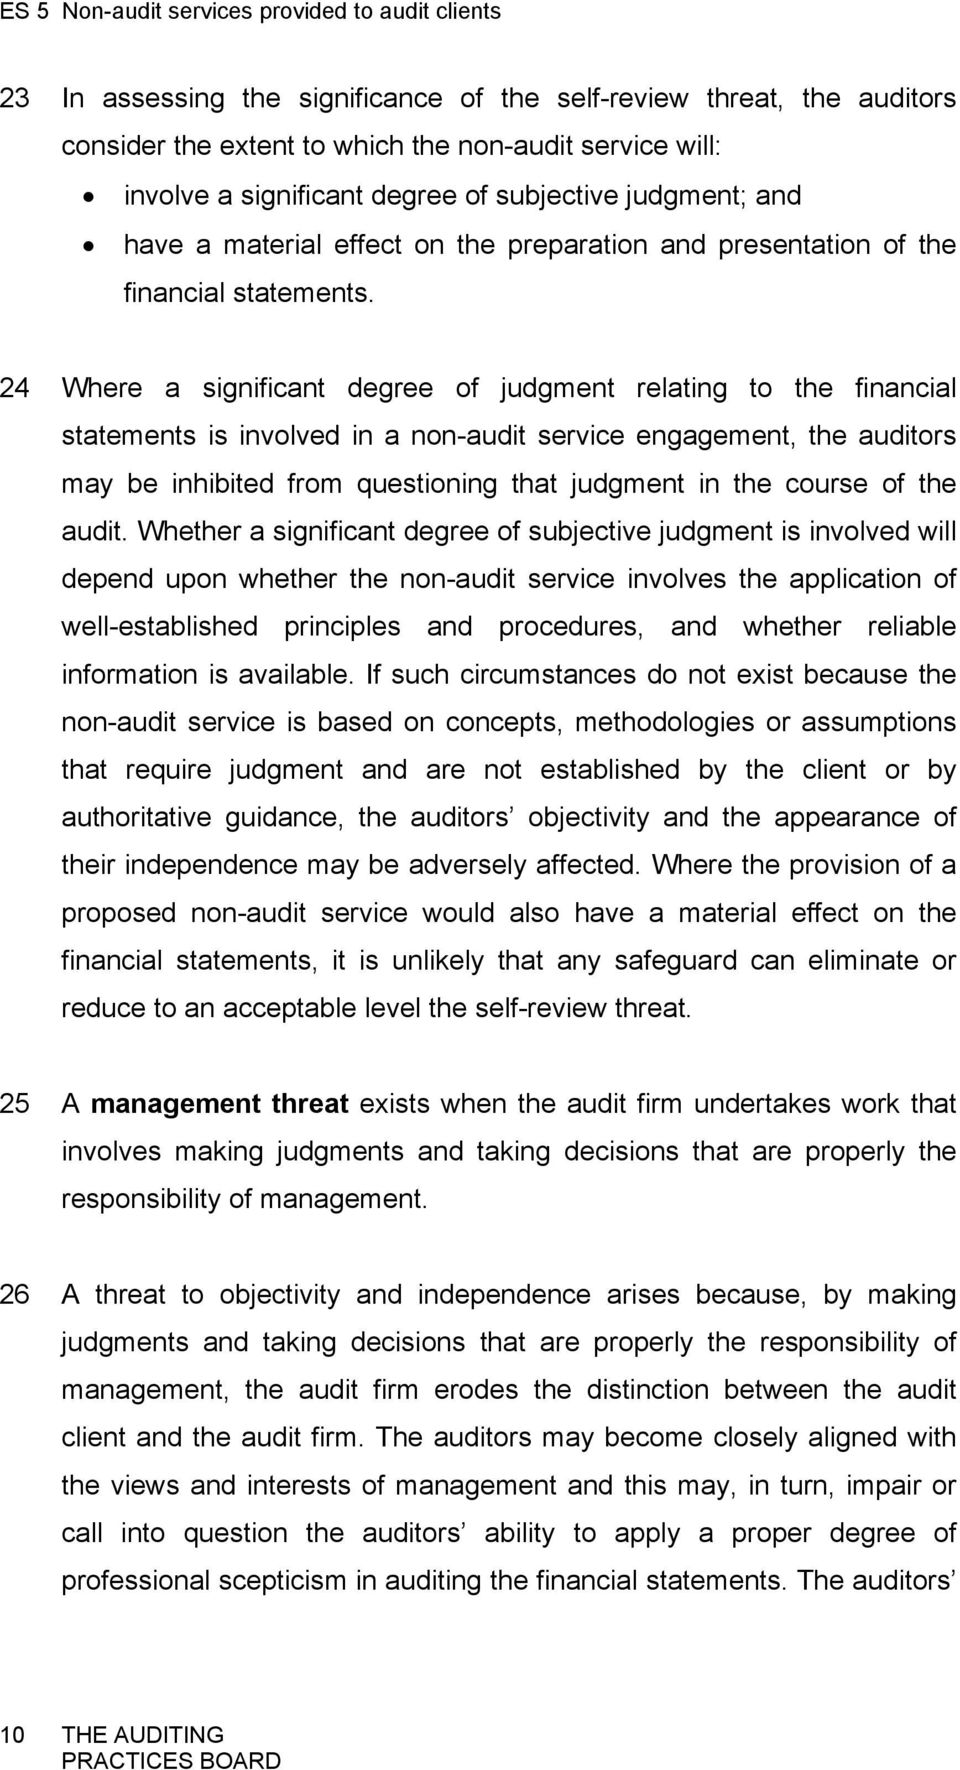 24 Where a significant degree of judgment relating to the financial statements is involved in a non-audit service engagement, the auditors may be inhibited from questioning that judgment in the